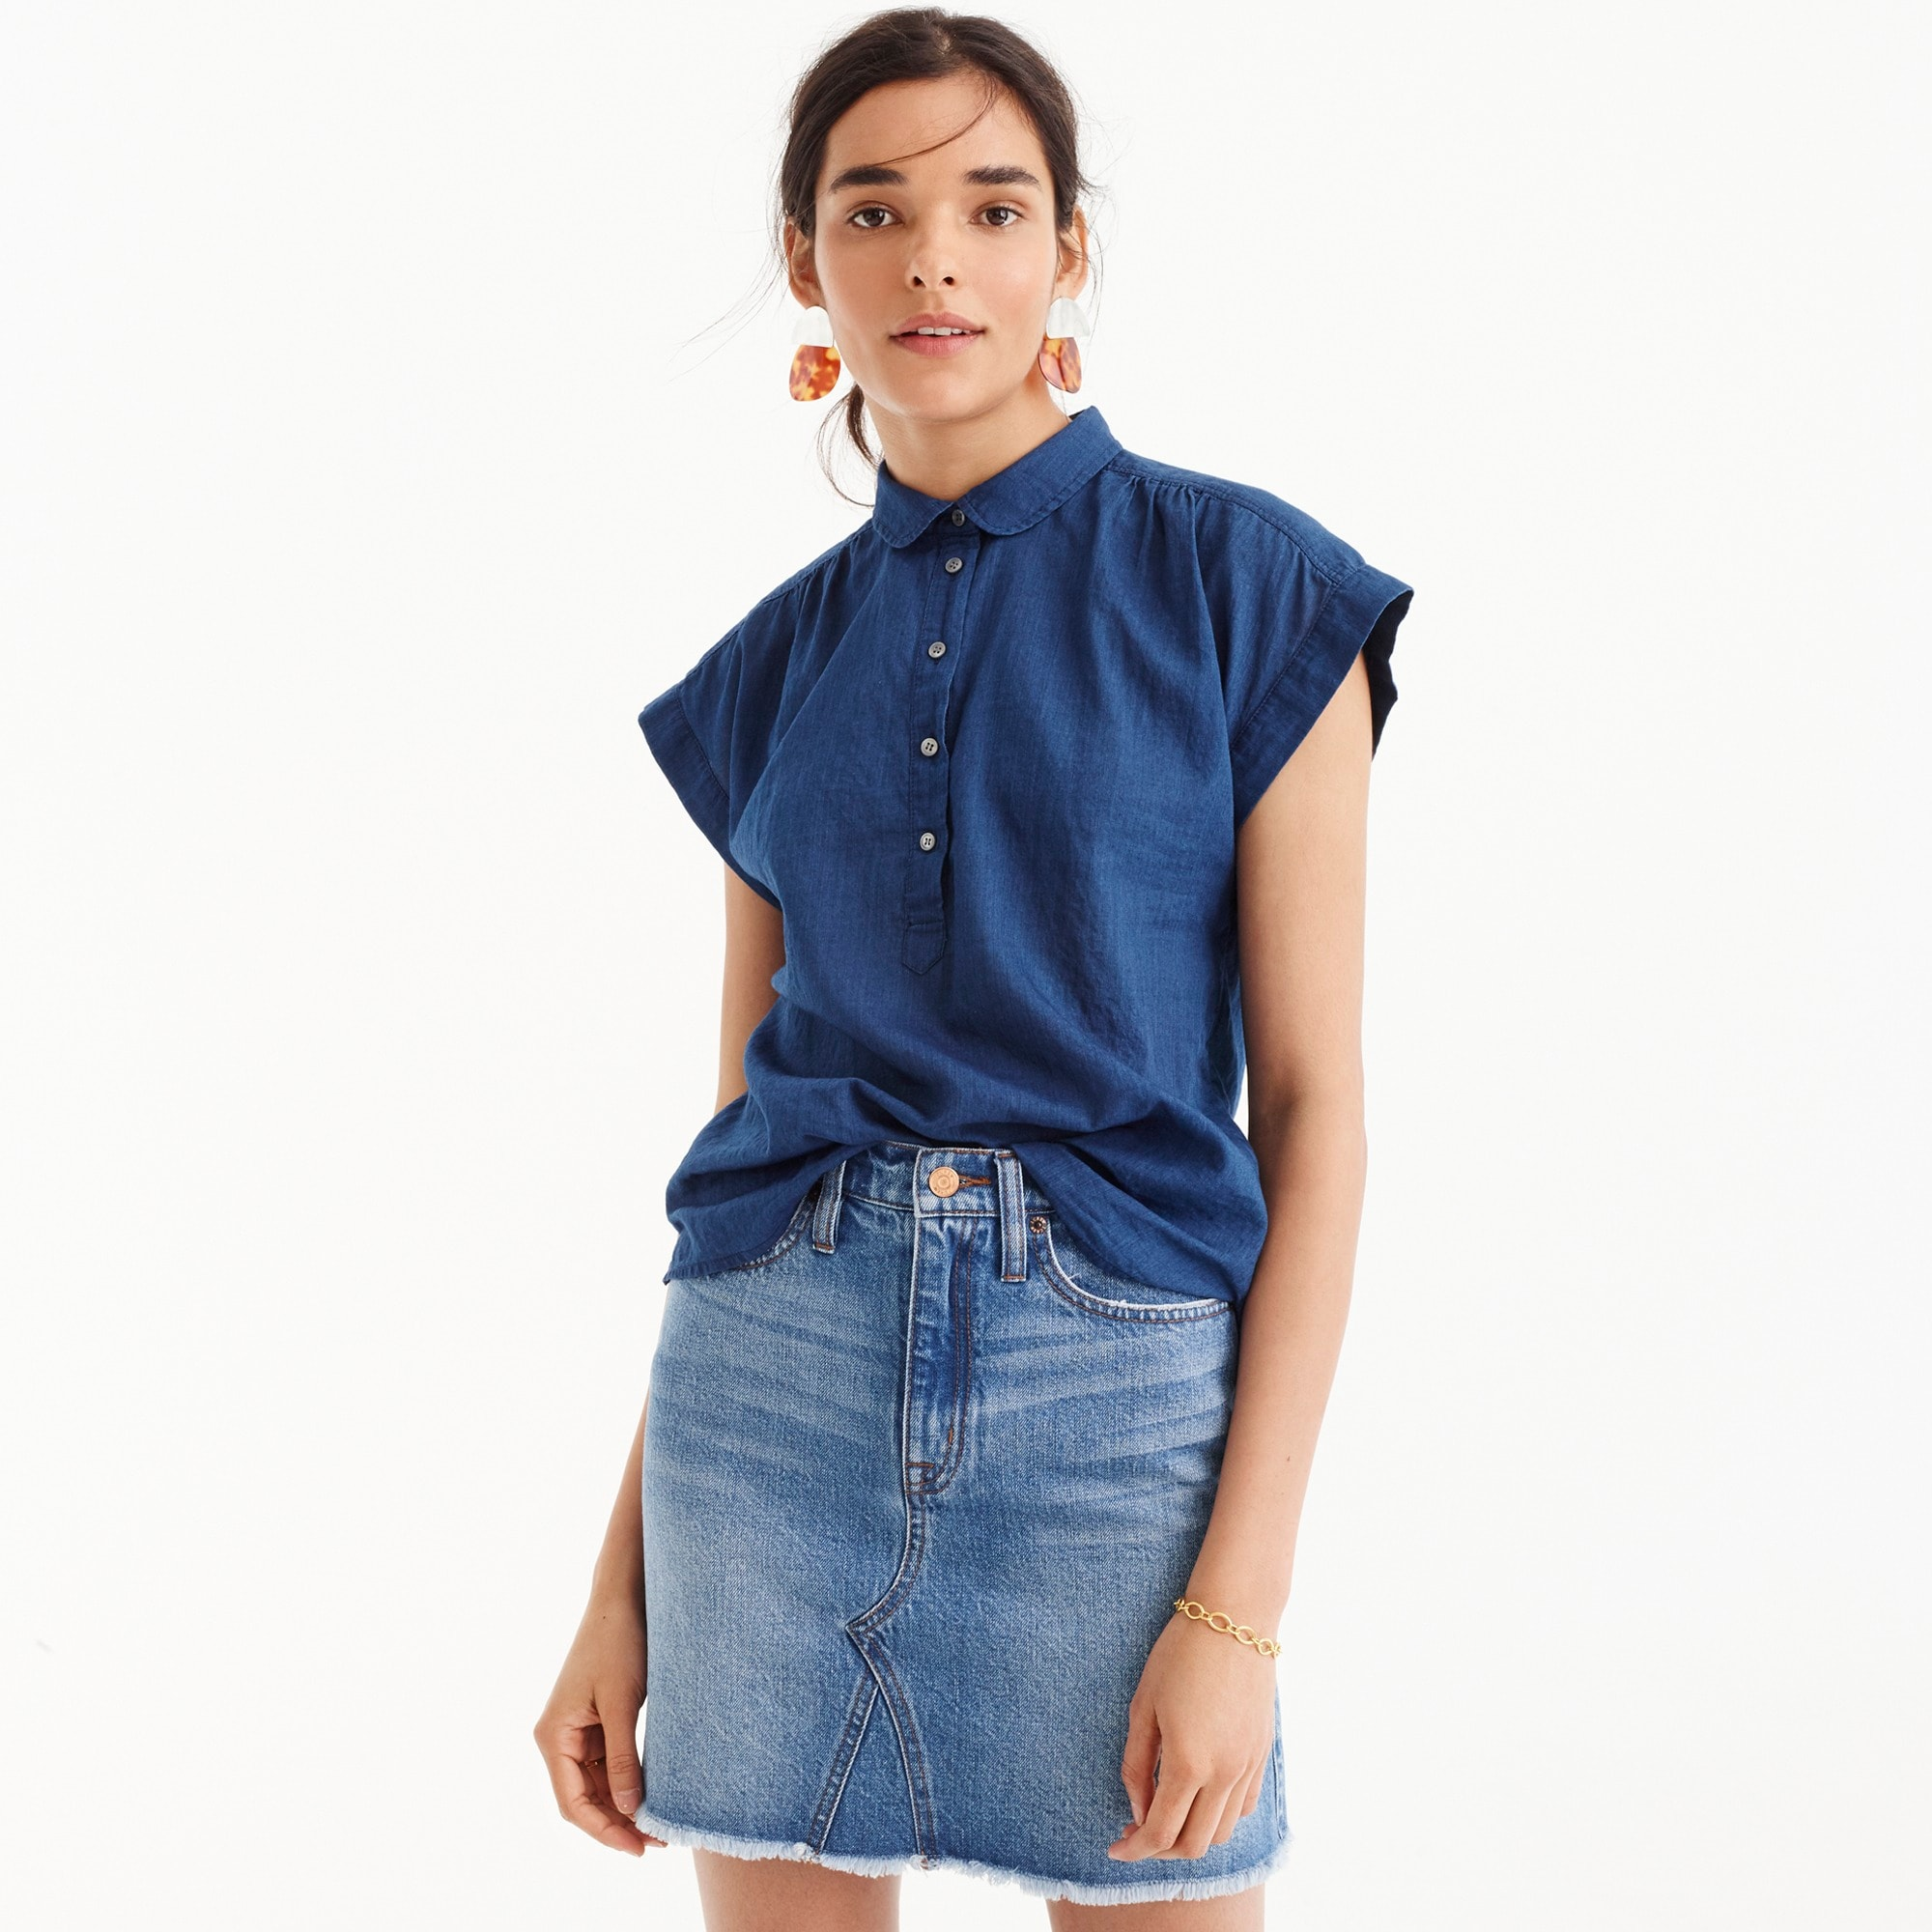 Image 2 for Petite collared popover shirt in indigo gauze